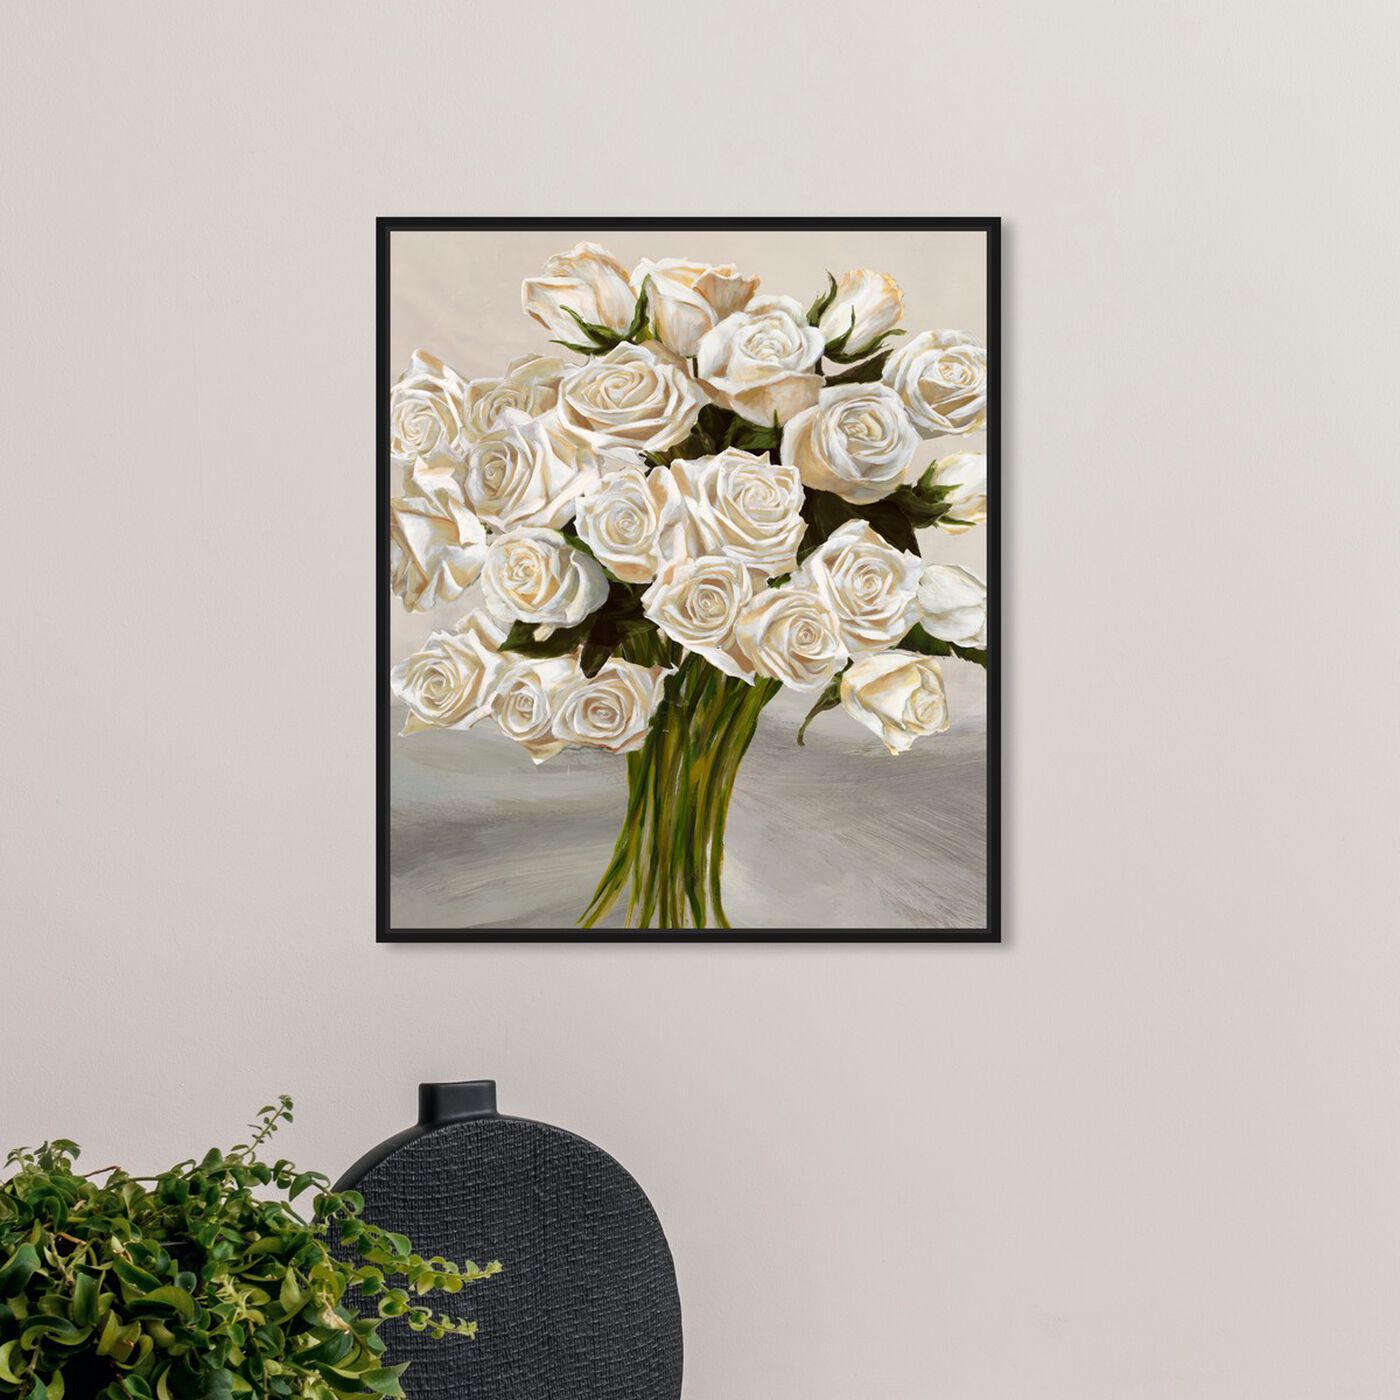 Hanging view of Sai - Ramos Del Rose 3LN3182 featuring floral and botanical and florals art.